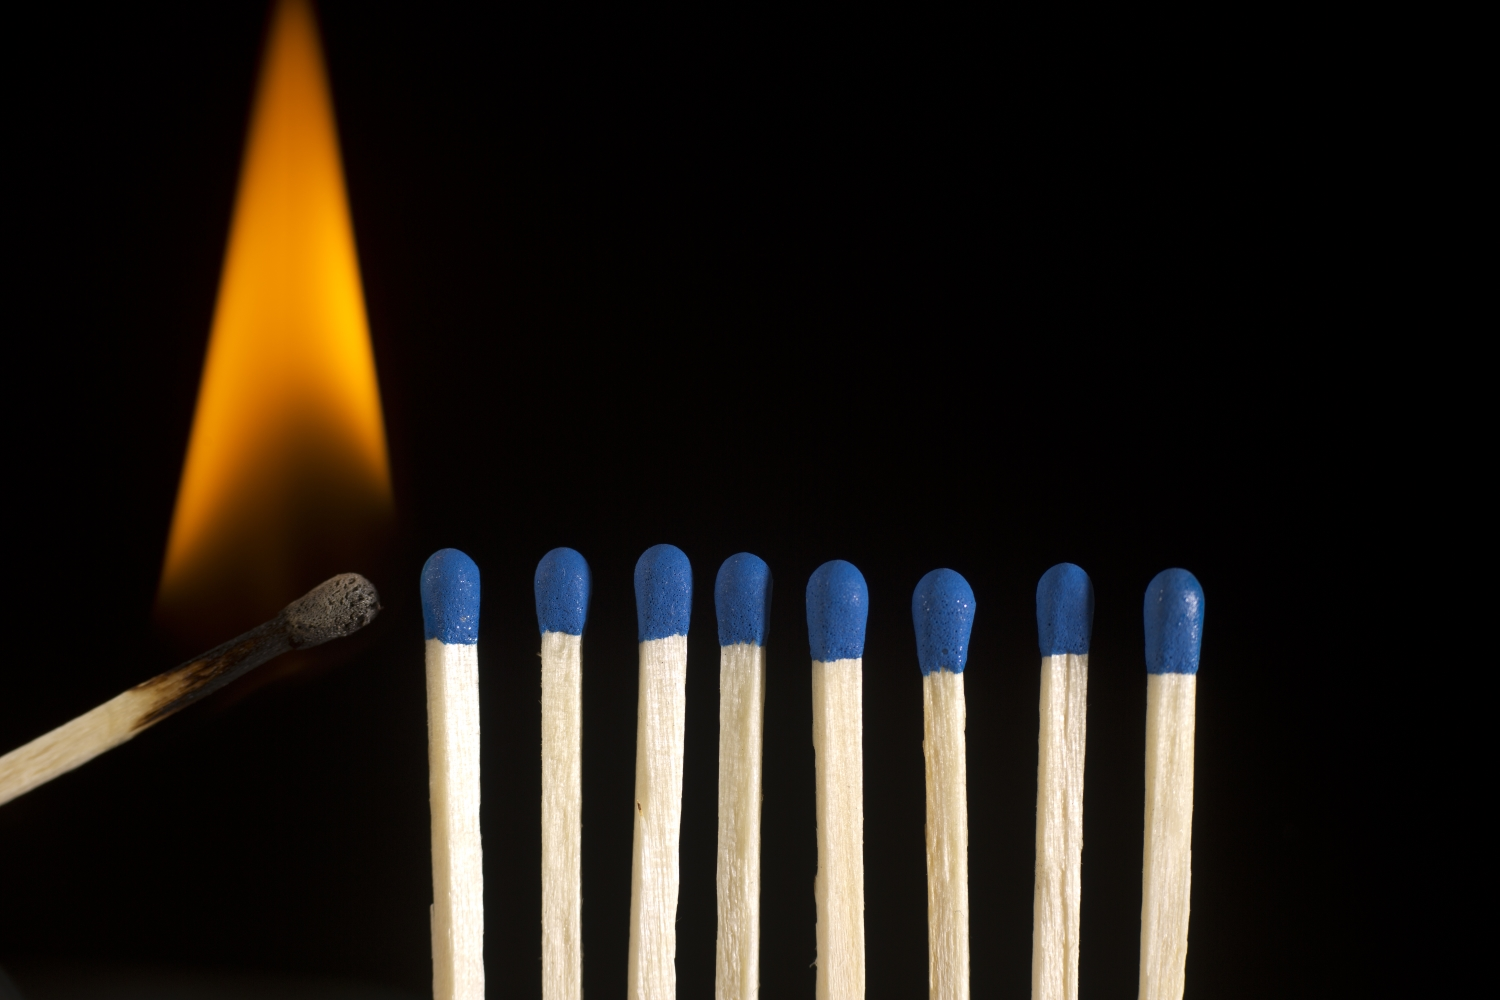 Matches In Row Ready To Burn